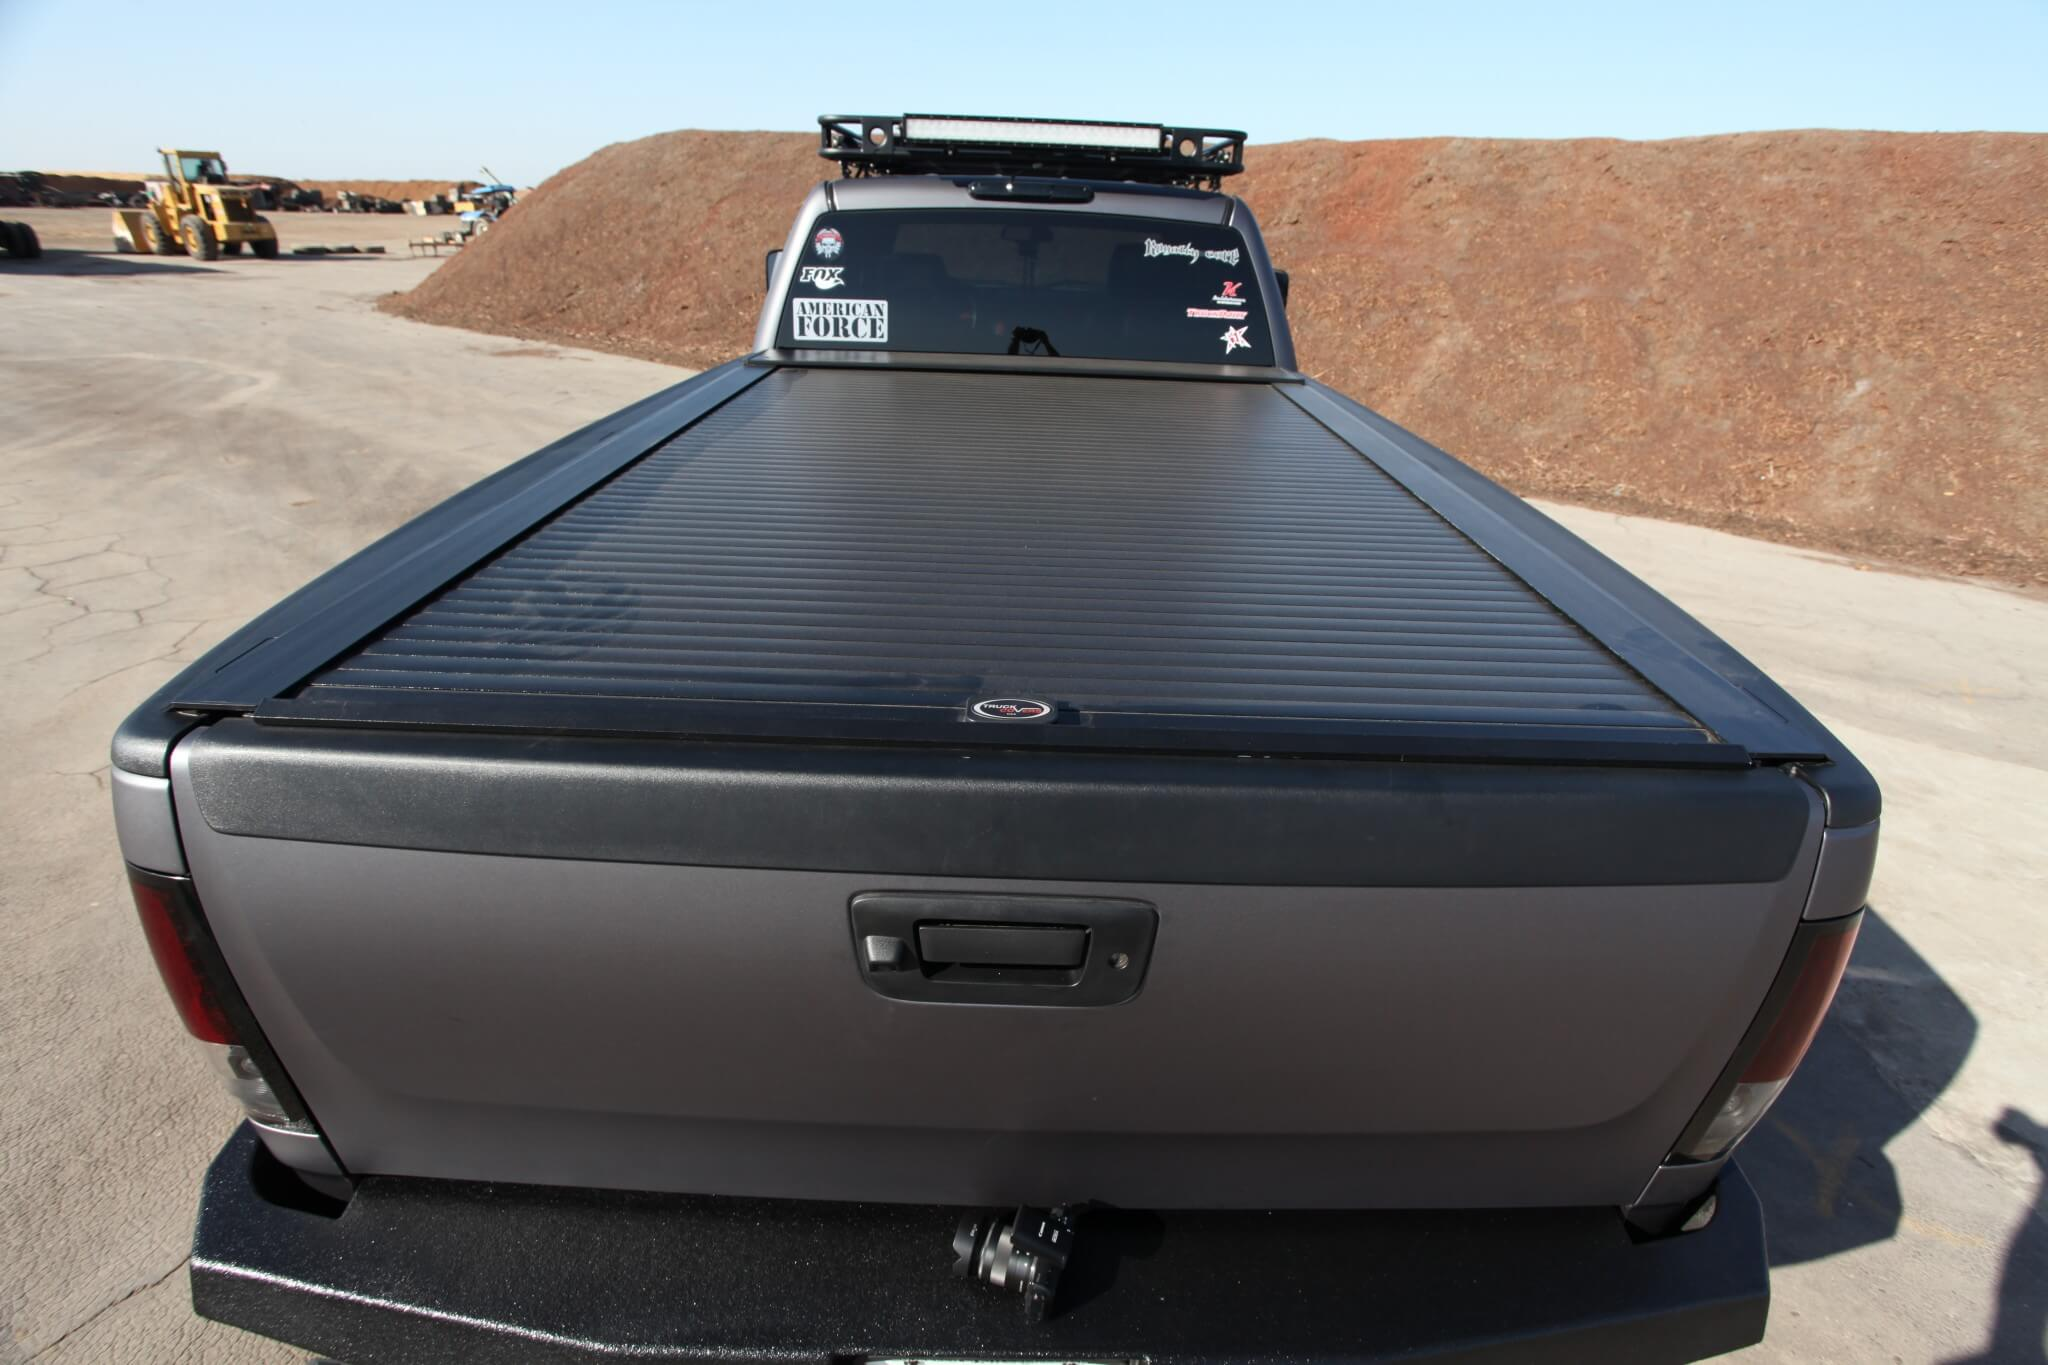 A retractable USA tonneau cover secures the bed's payload.